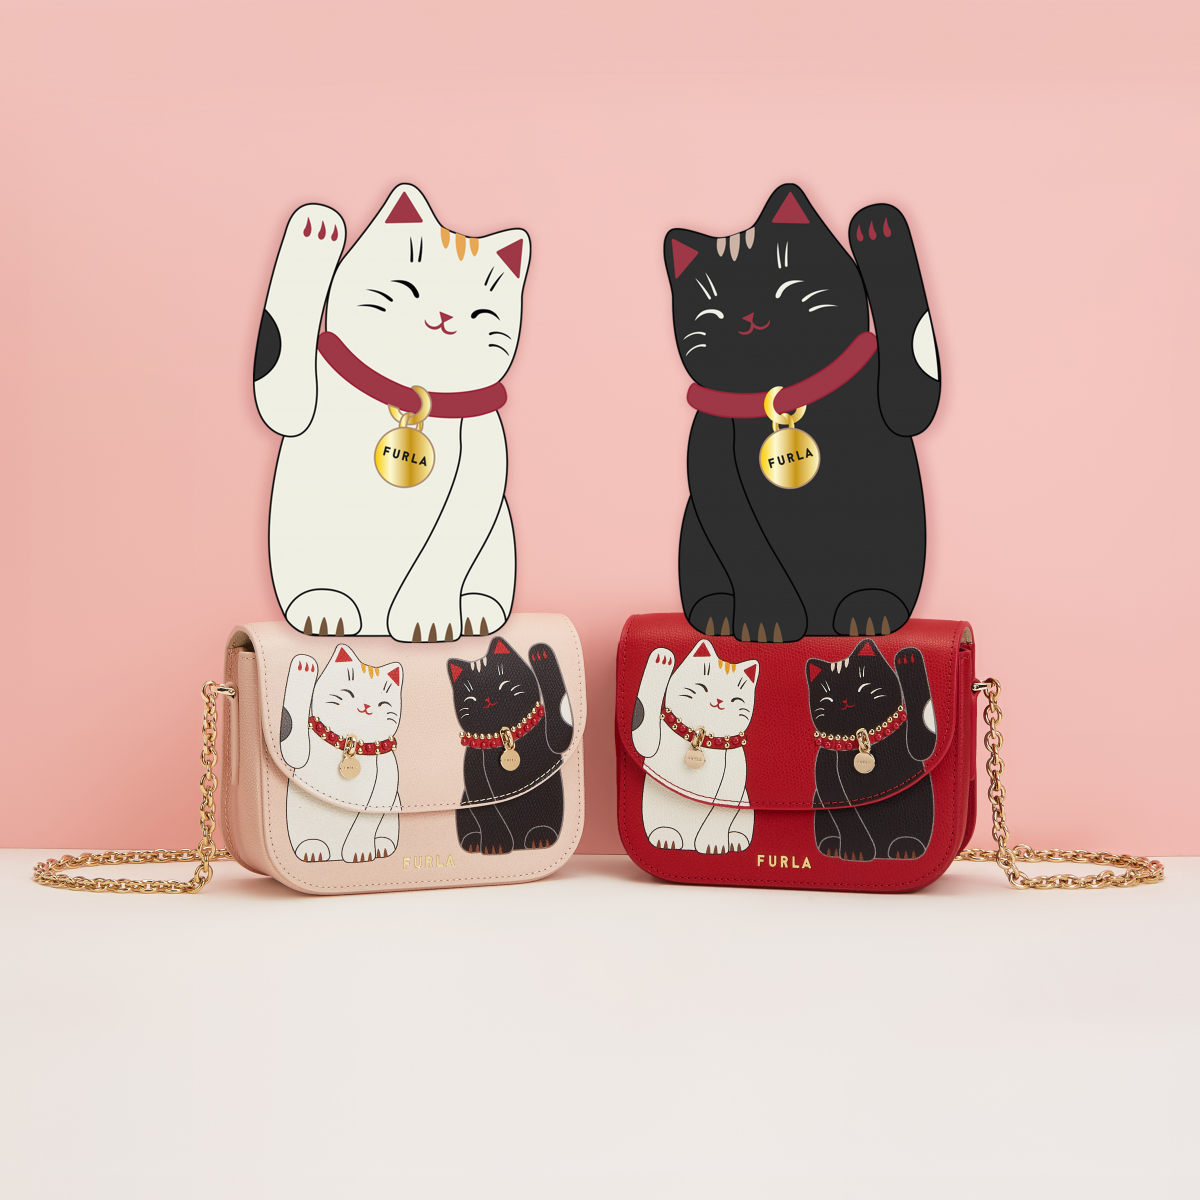 FURLA LITTLE CATS MINI CROSS BODY(H13.5×W17×D7cm)各¥49,000/フルラ ジャパン